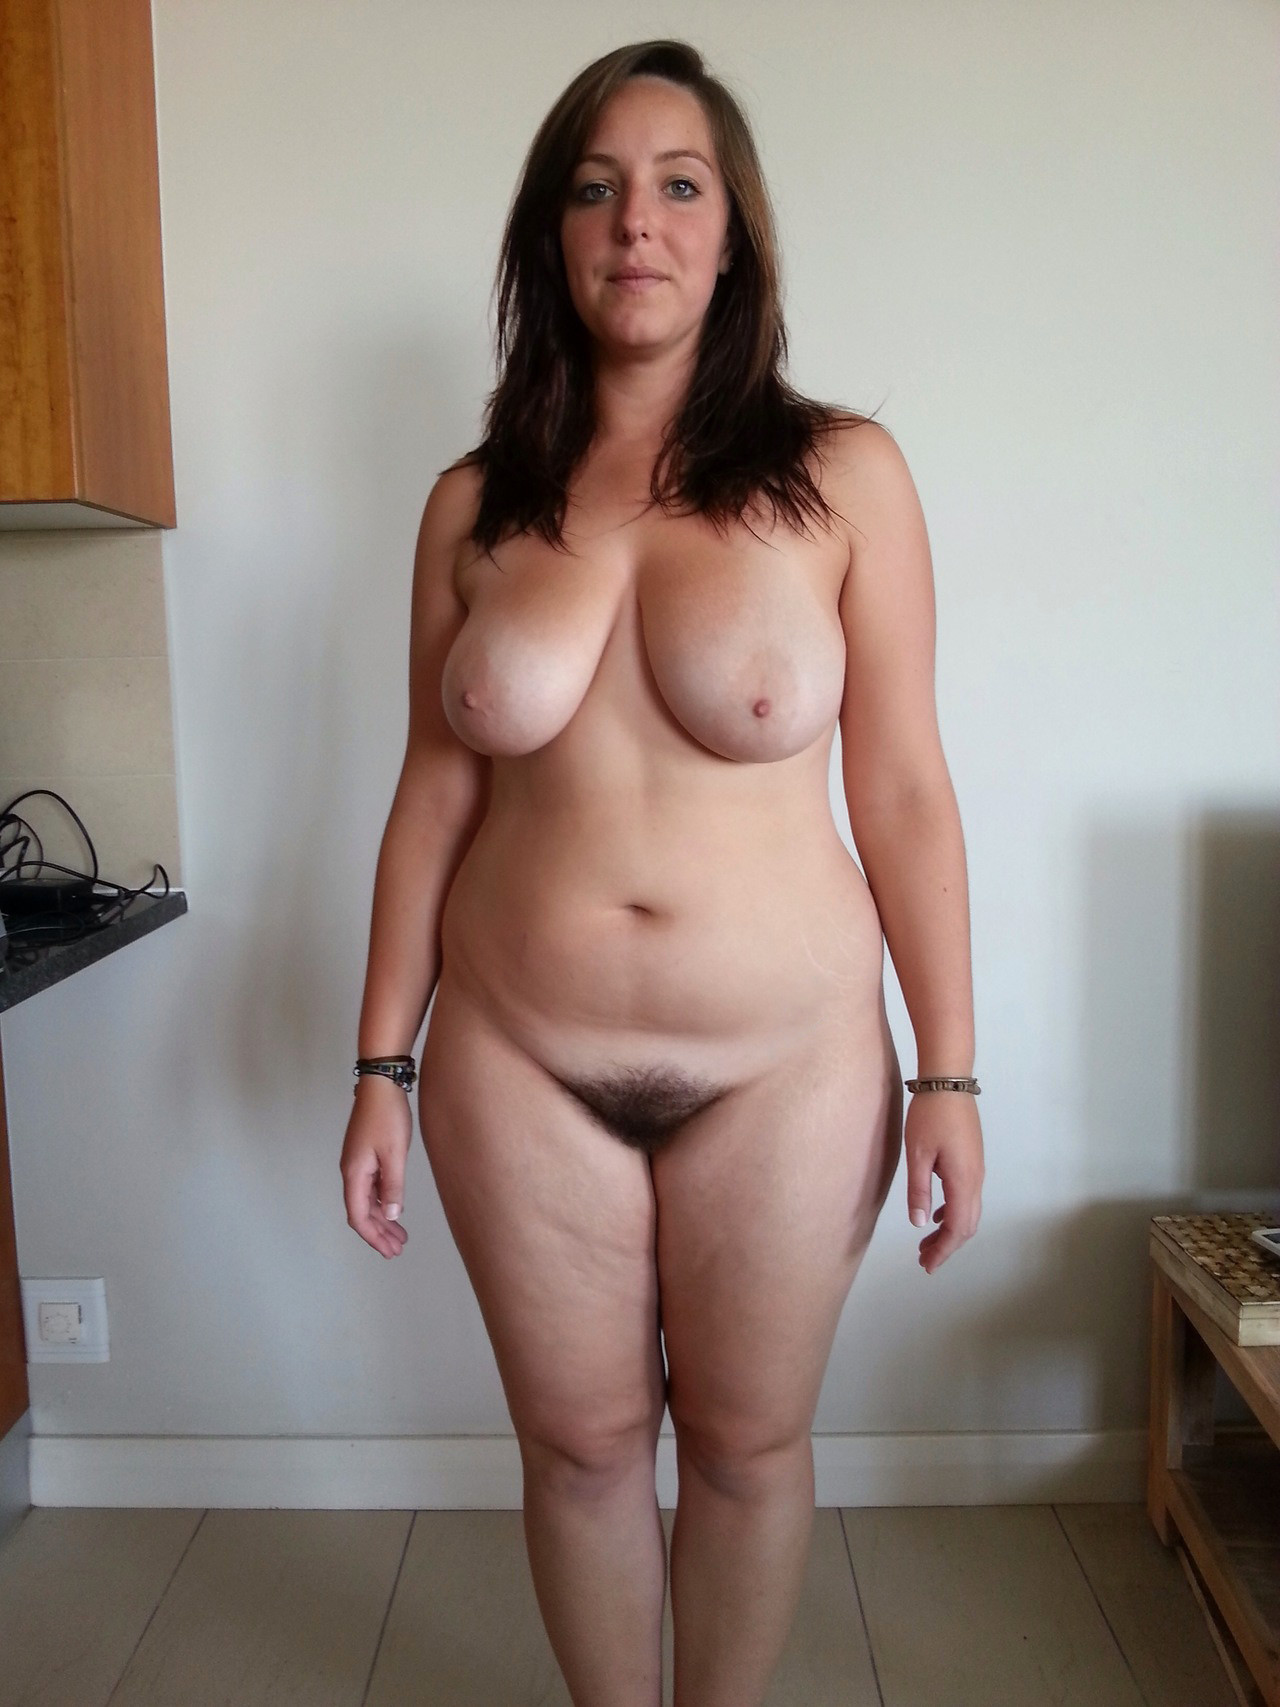 Fuck hot fat naked girl mike